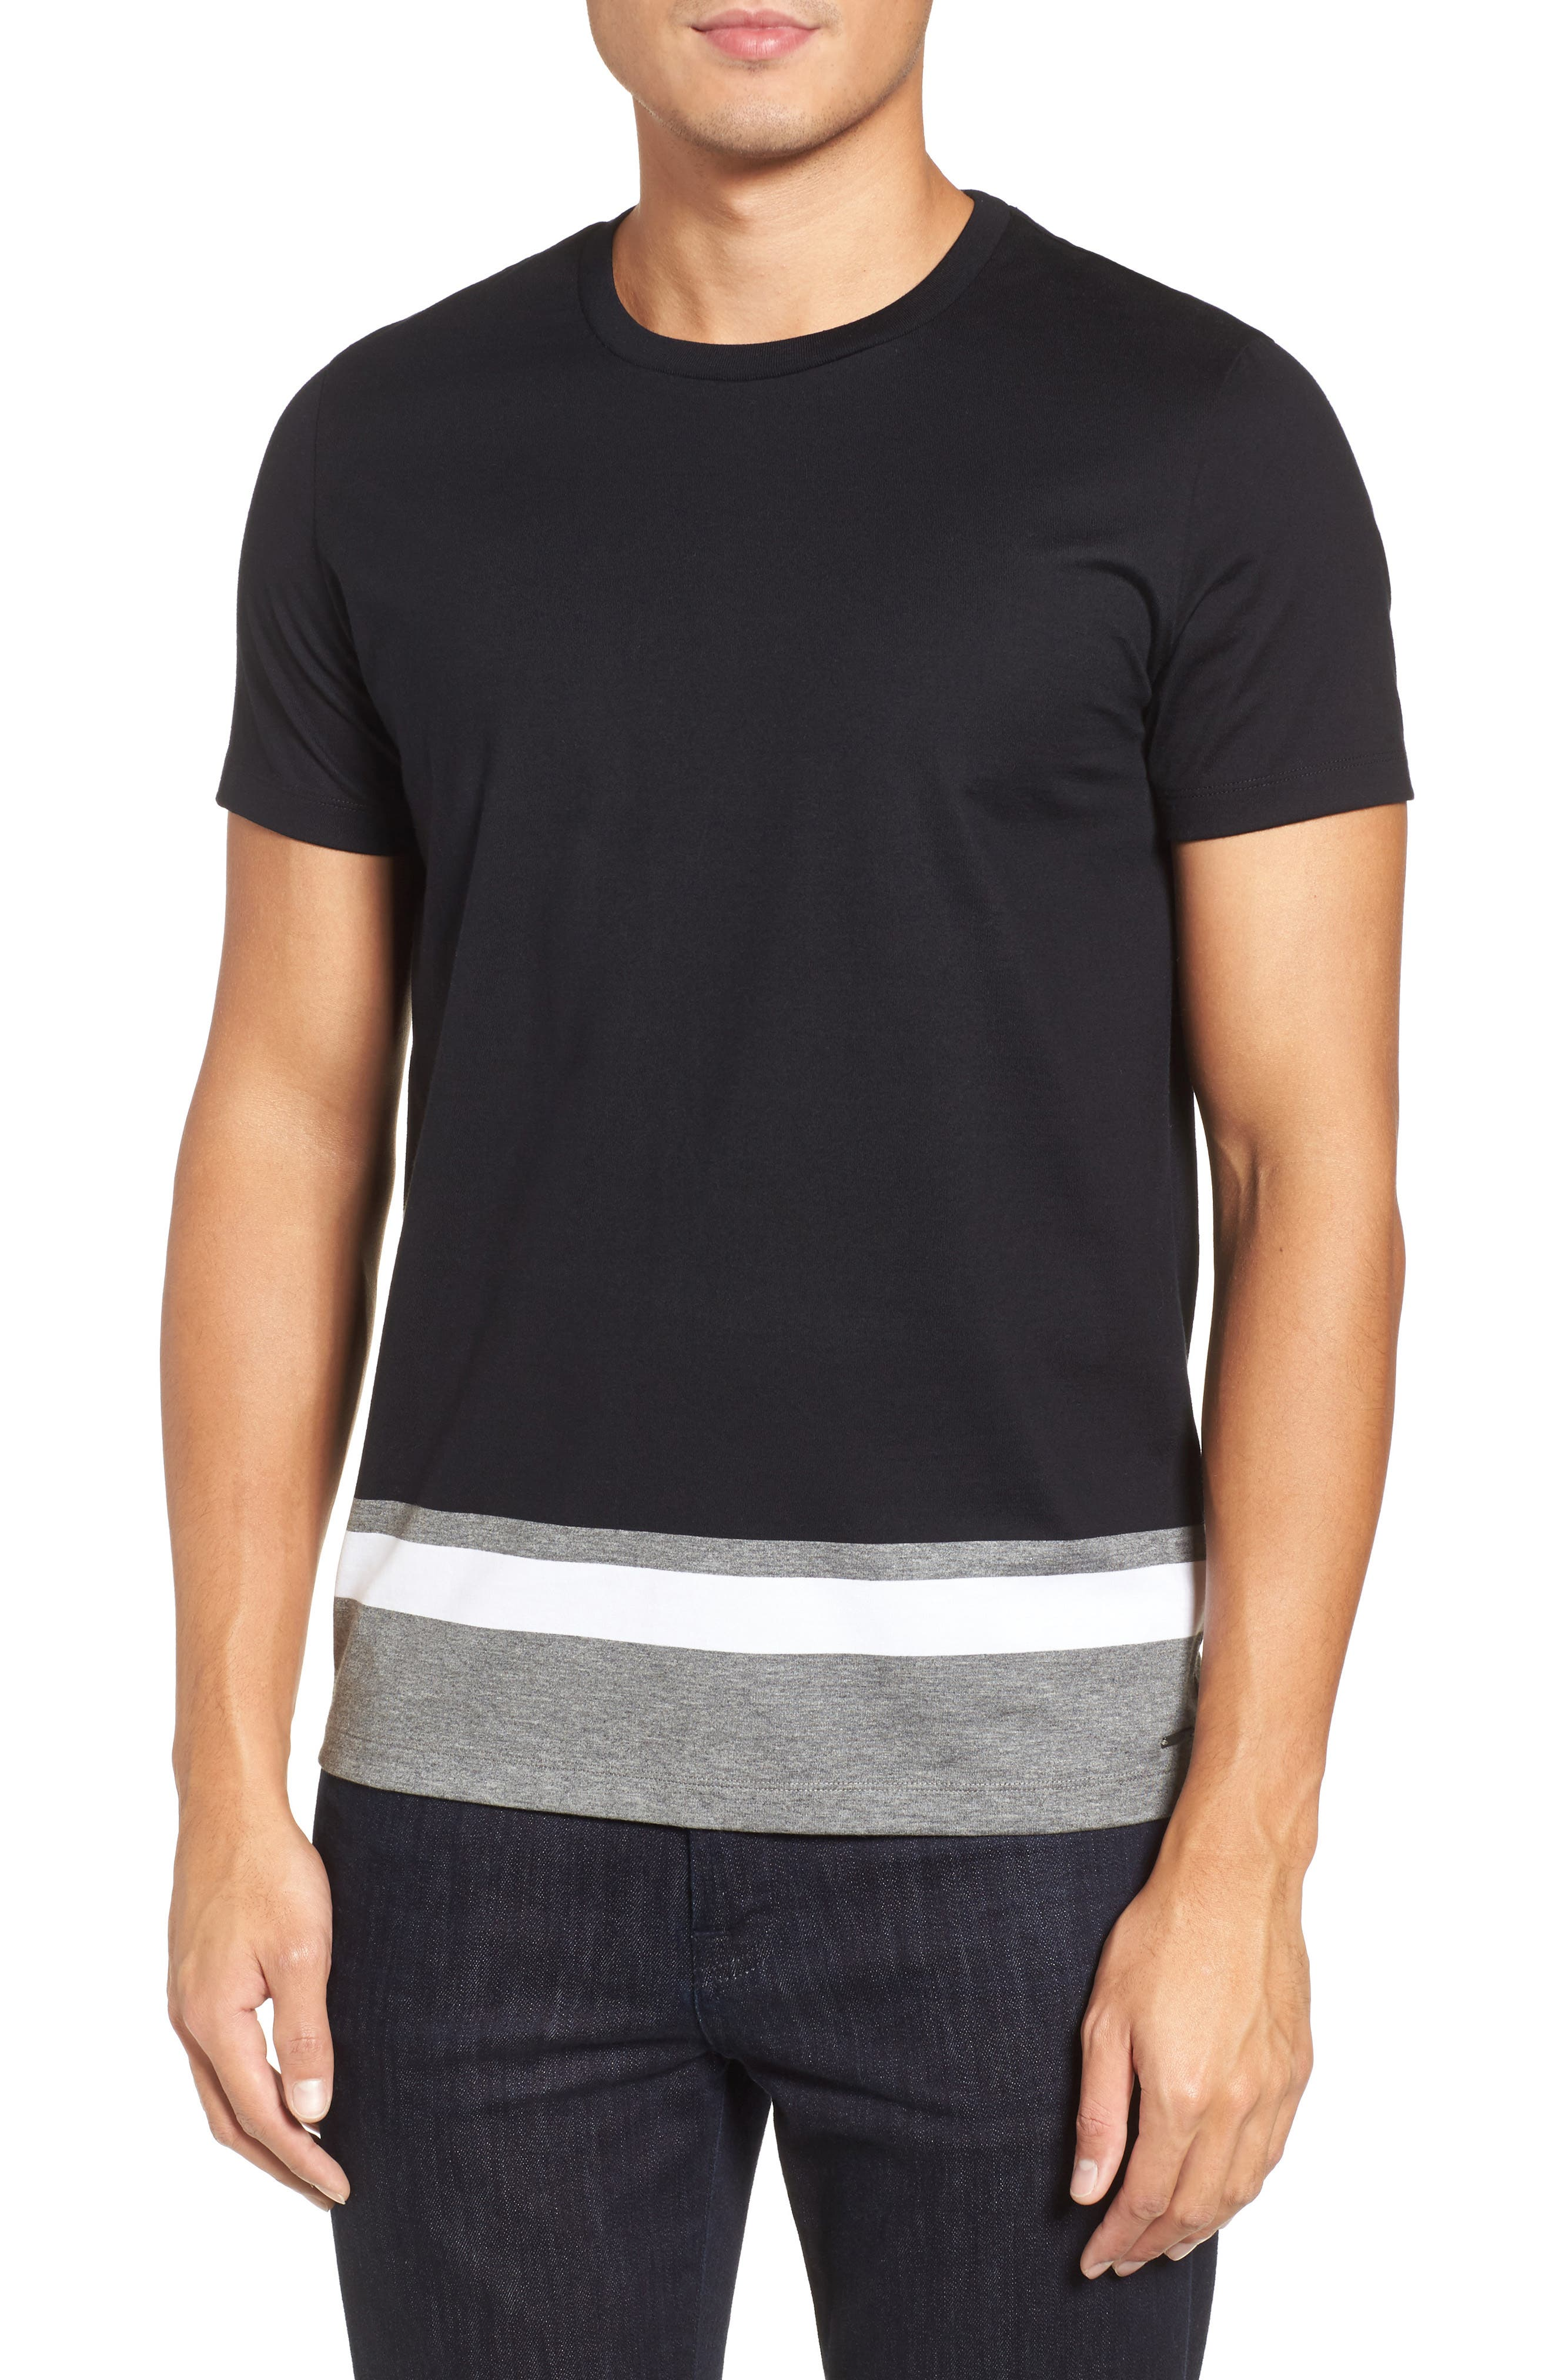 Tiburt Colorblock T-Shirt,                         Main,                         color, 001